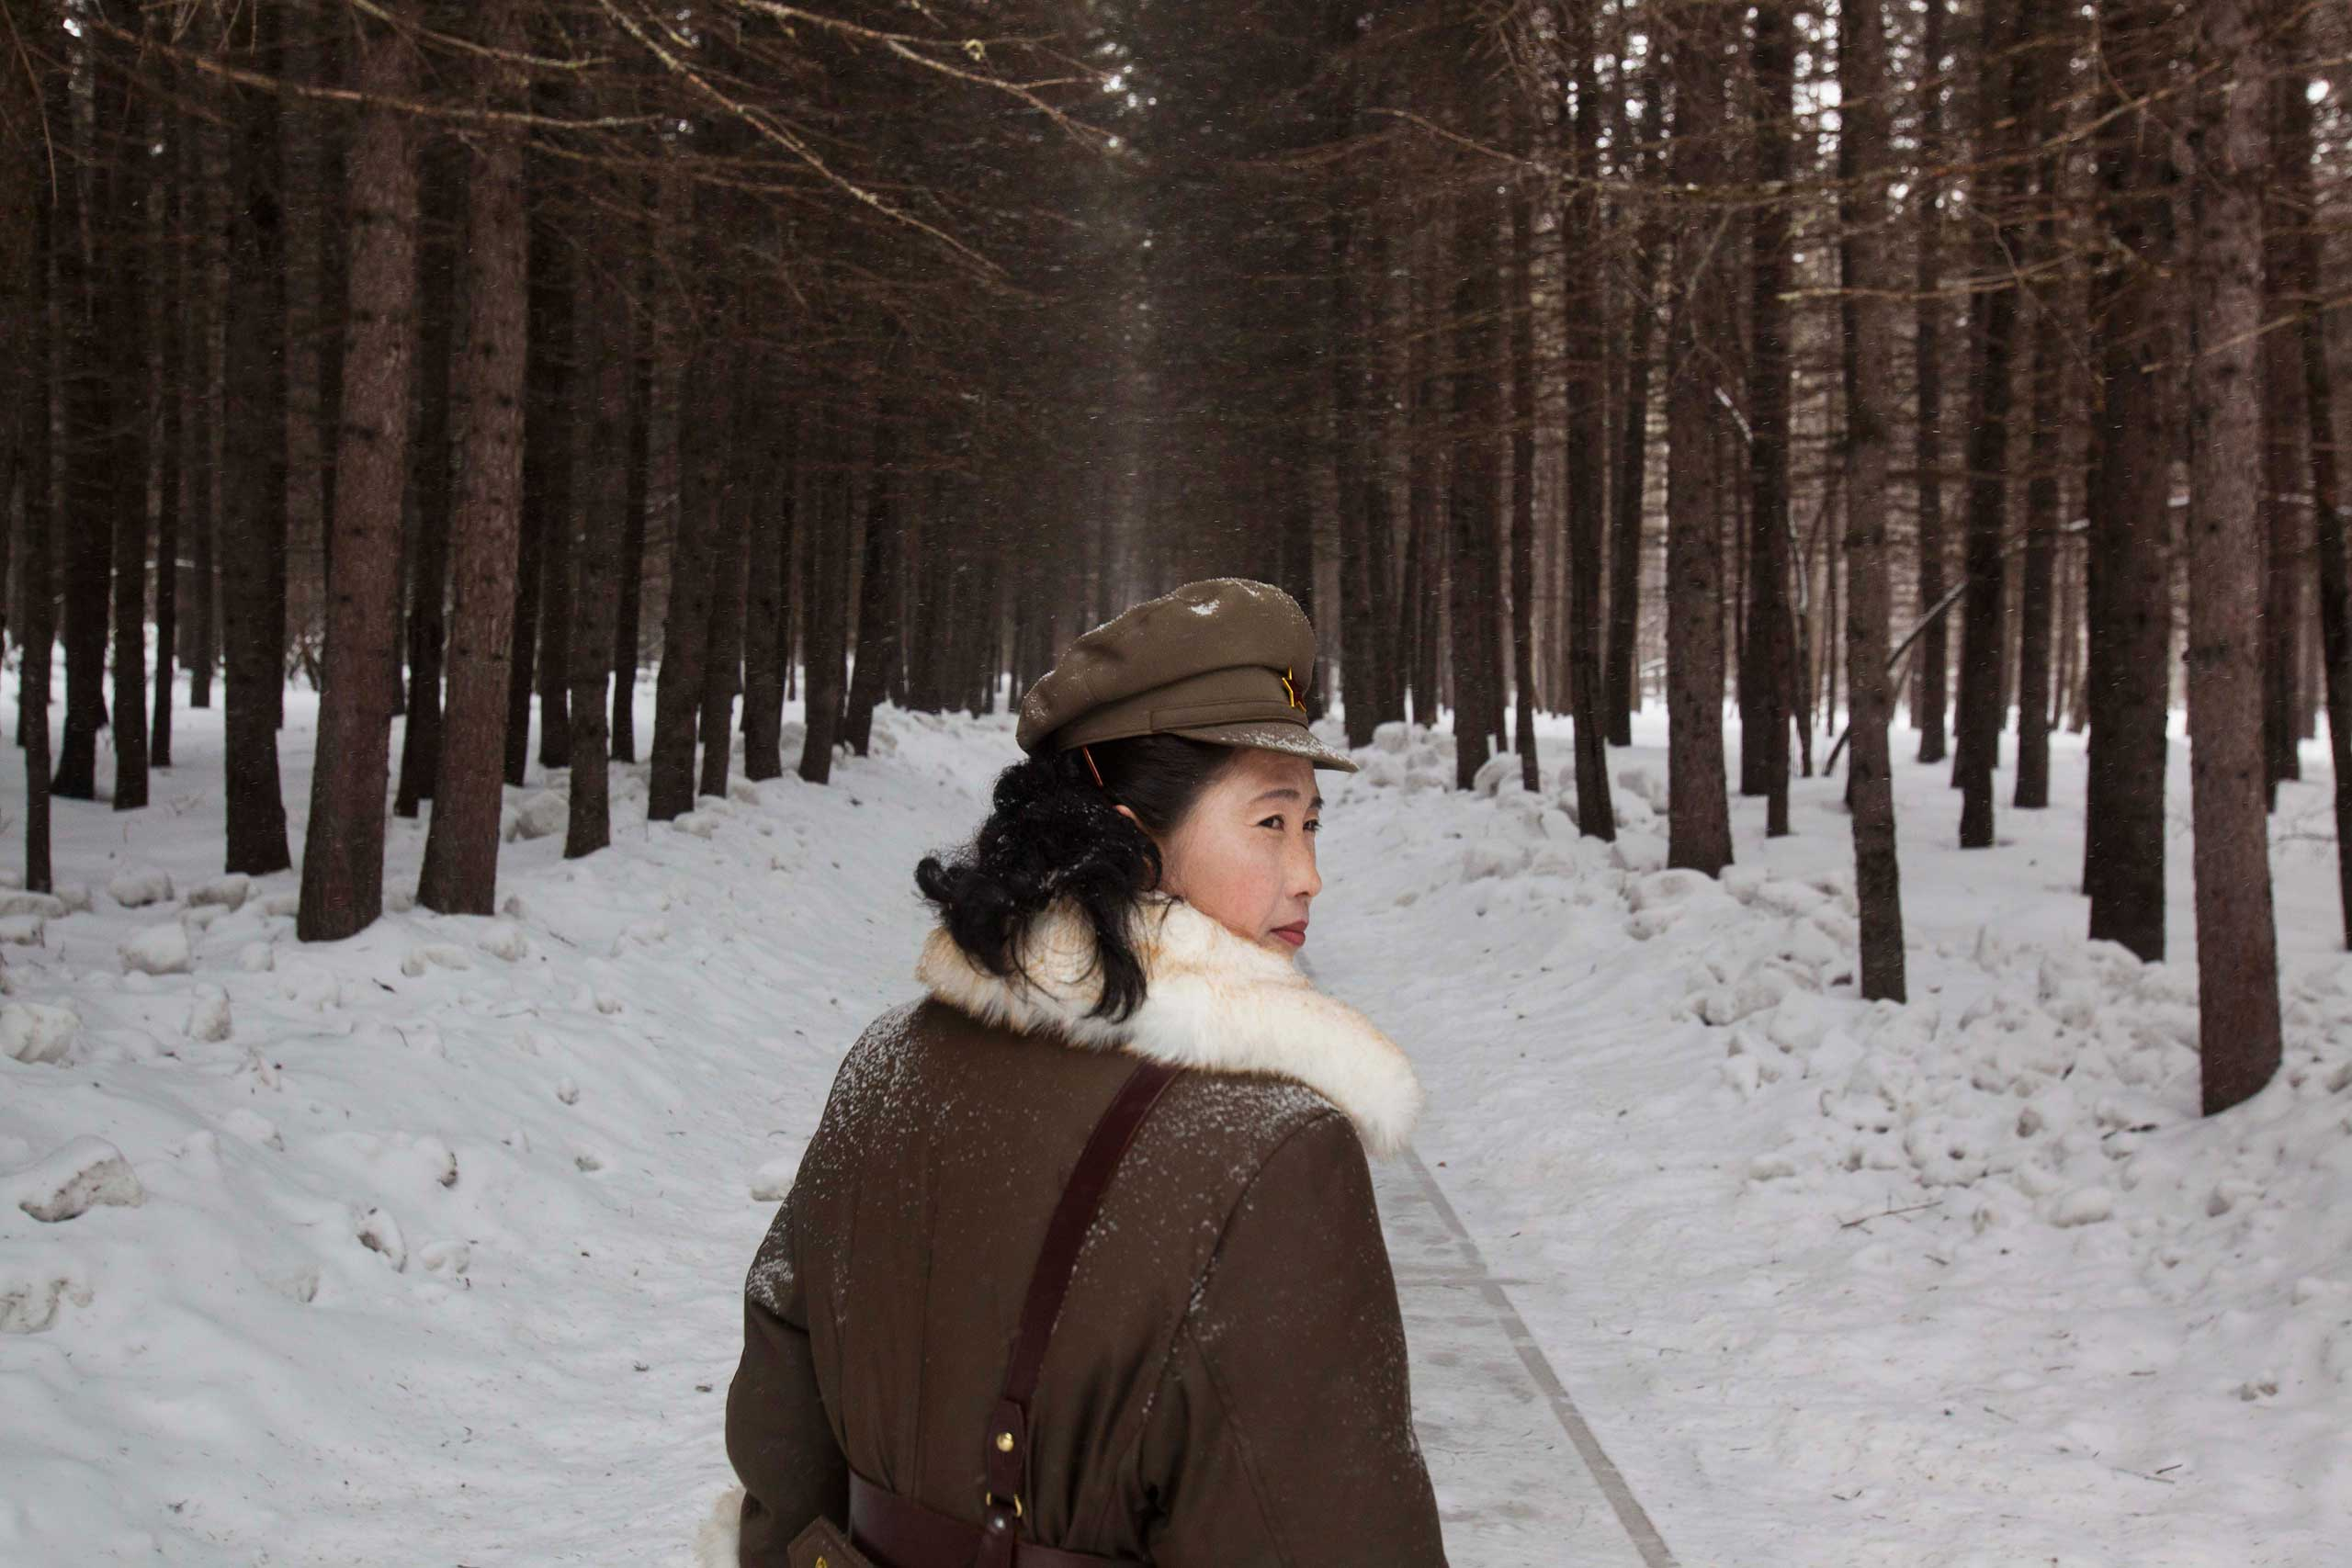 April 4, 2012. a North Korean soldier working as a guide walks through a forest at the foot of Mount Paektu, North Korea.